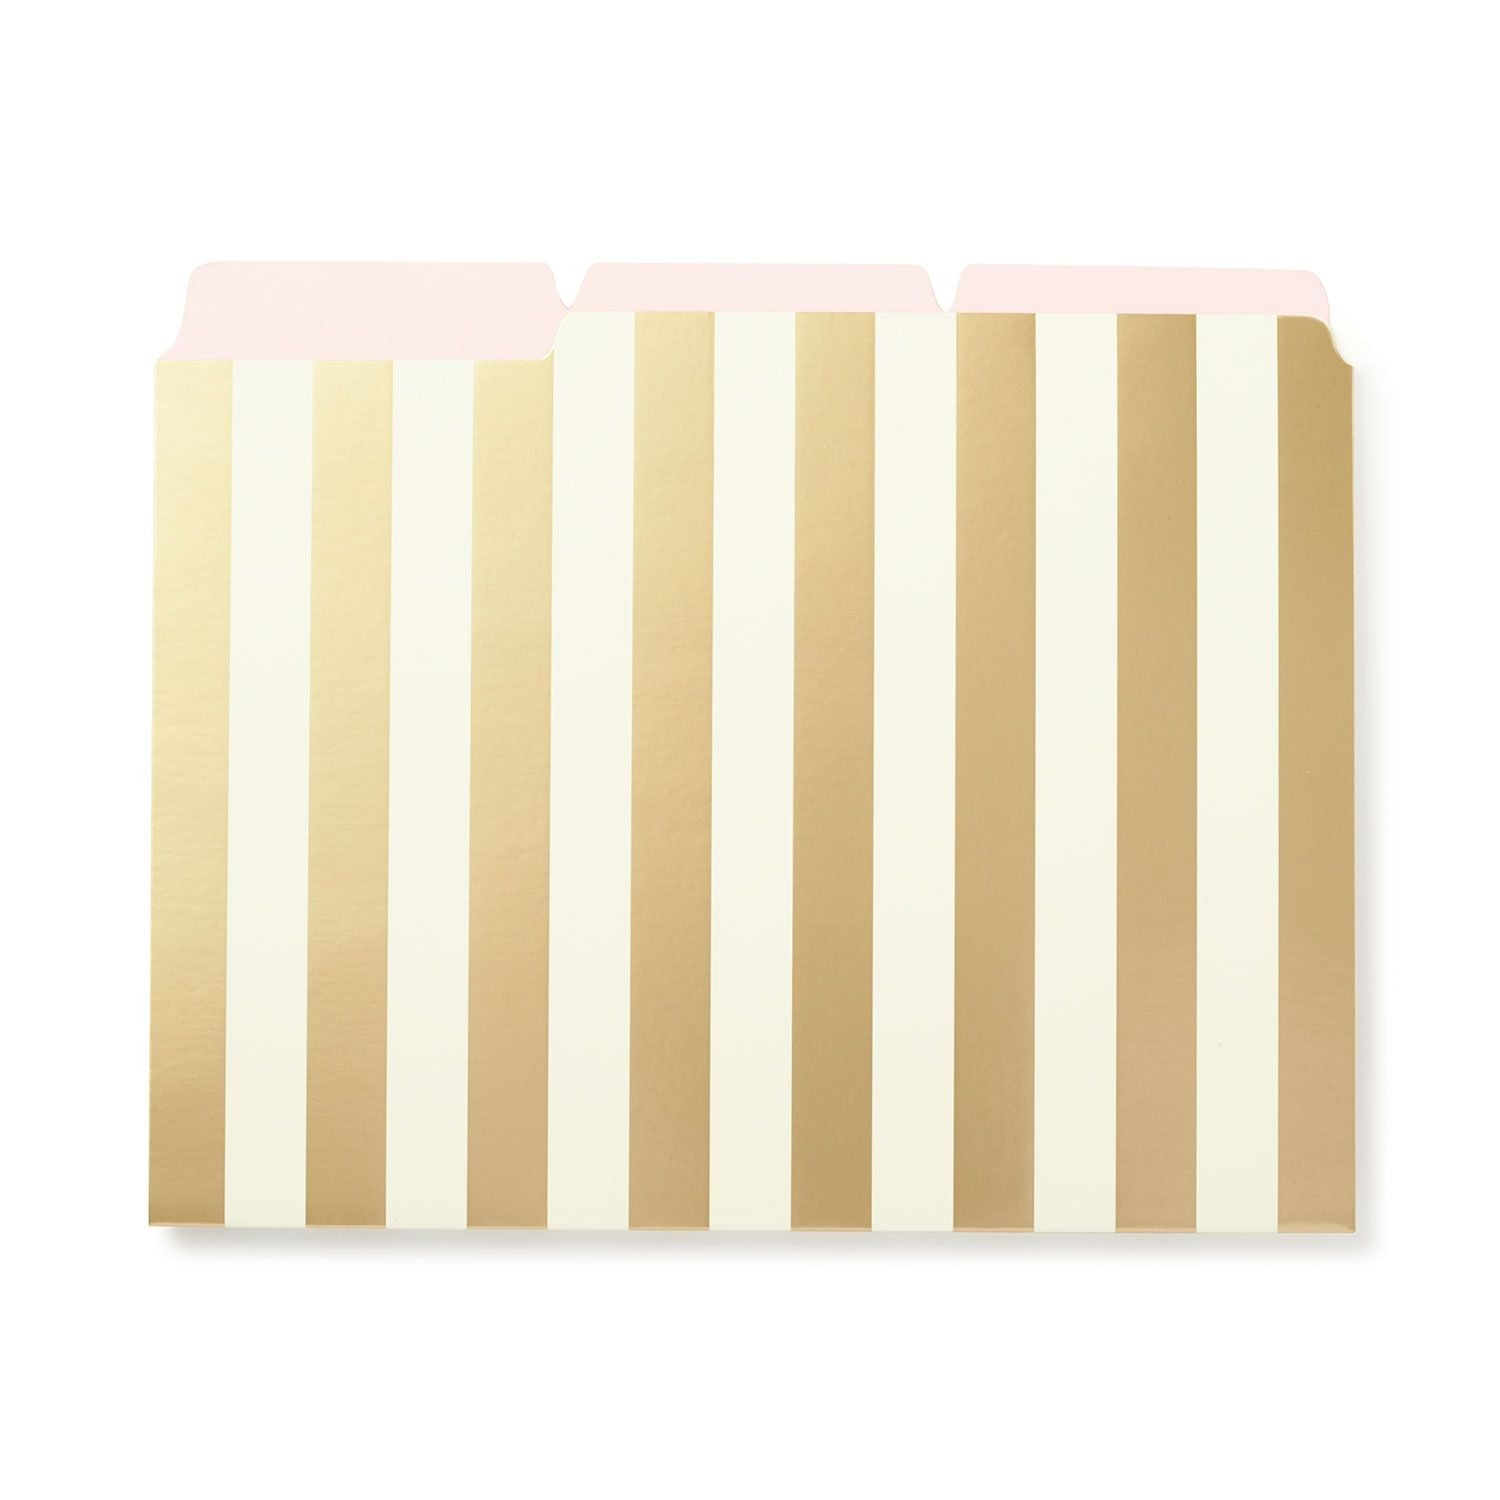 Kate Spade Stripes Folder Set